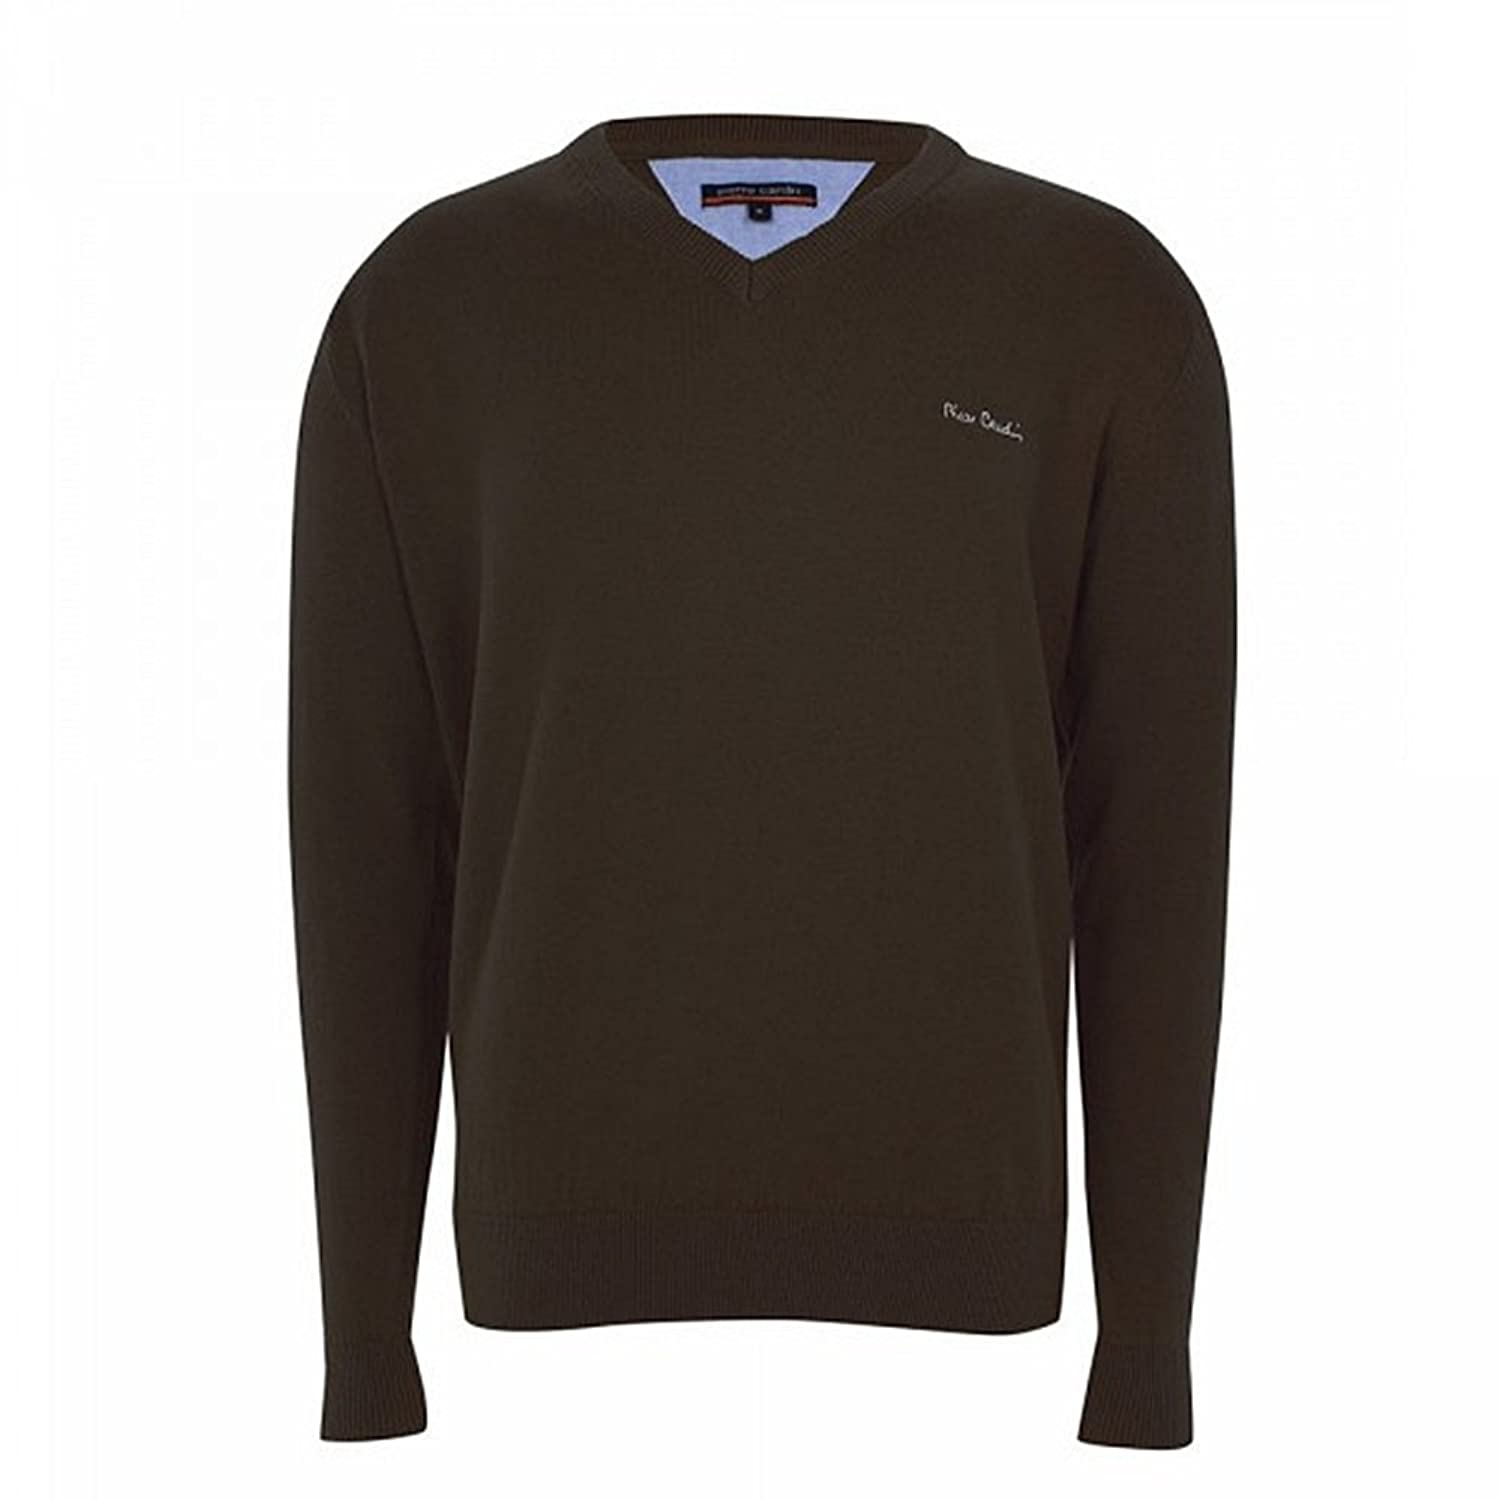 Pierre Cardin Men's Jumper